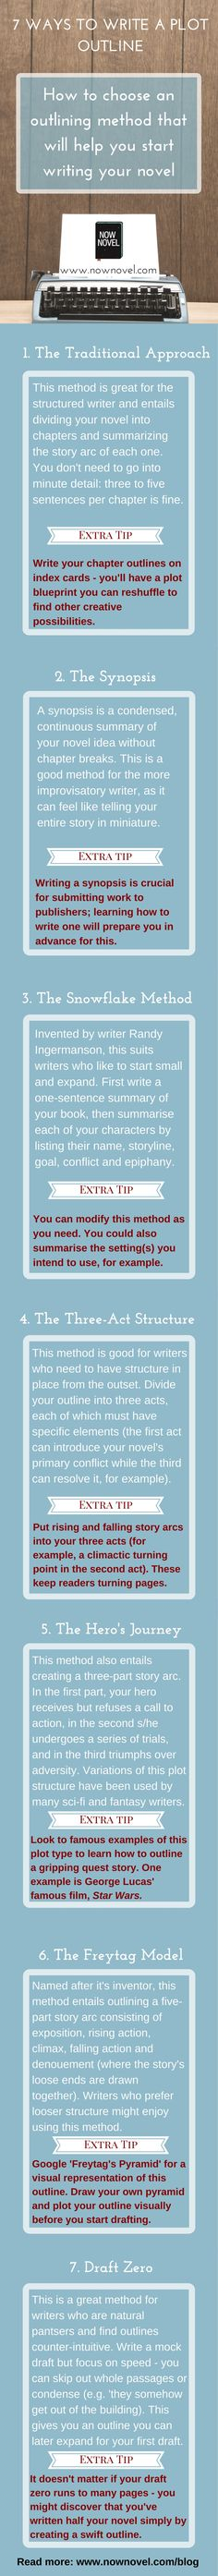 Learn how to write a plot outline for your novel before you start your first draft. Writing a plot outline will help you finish and avoid writer's block.